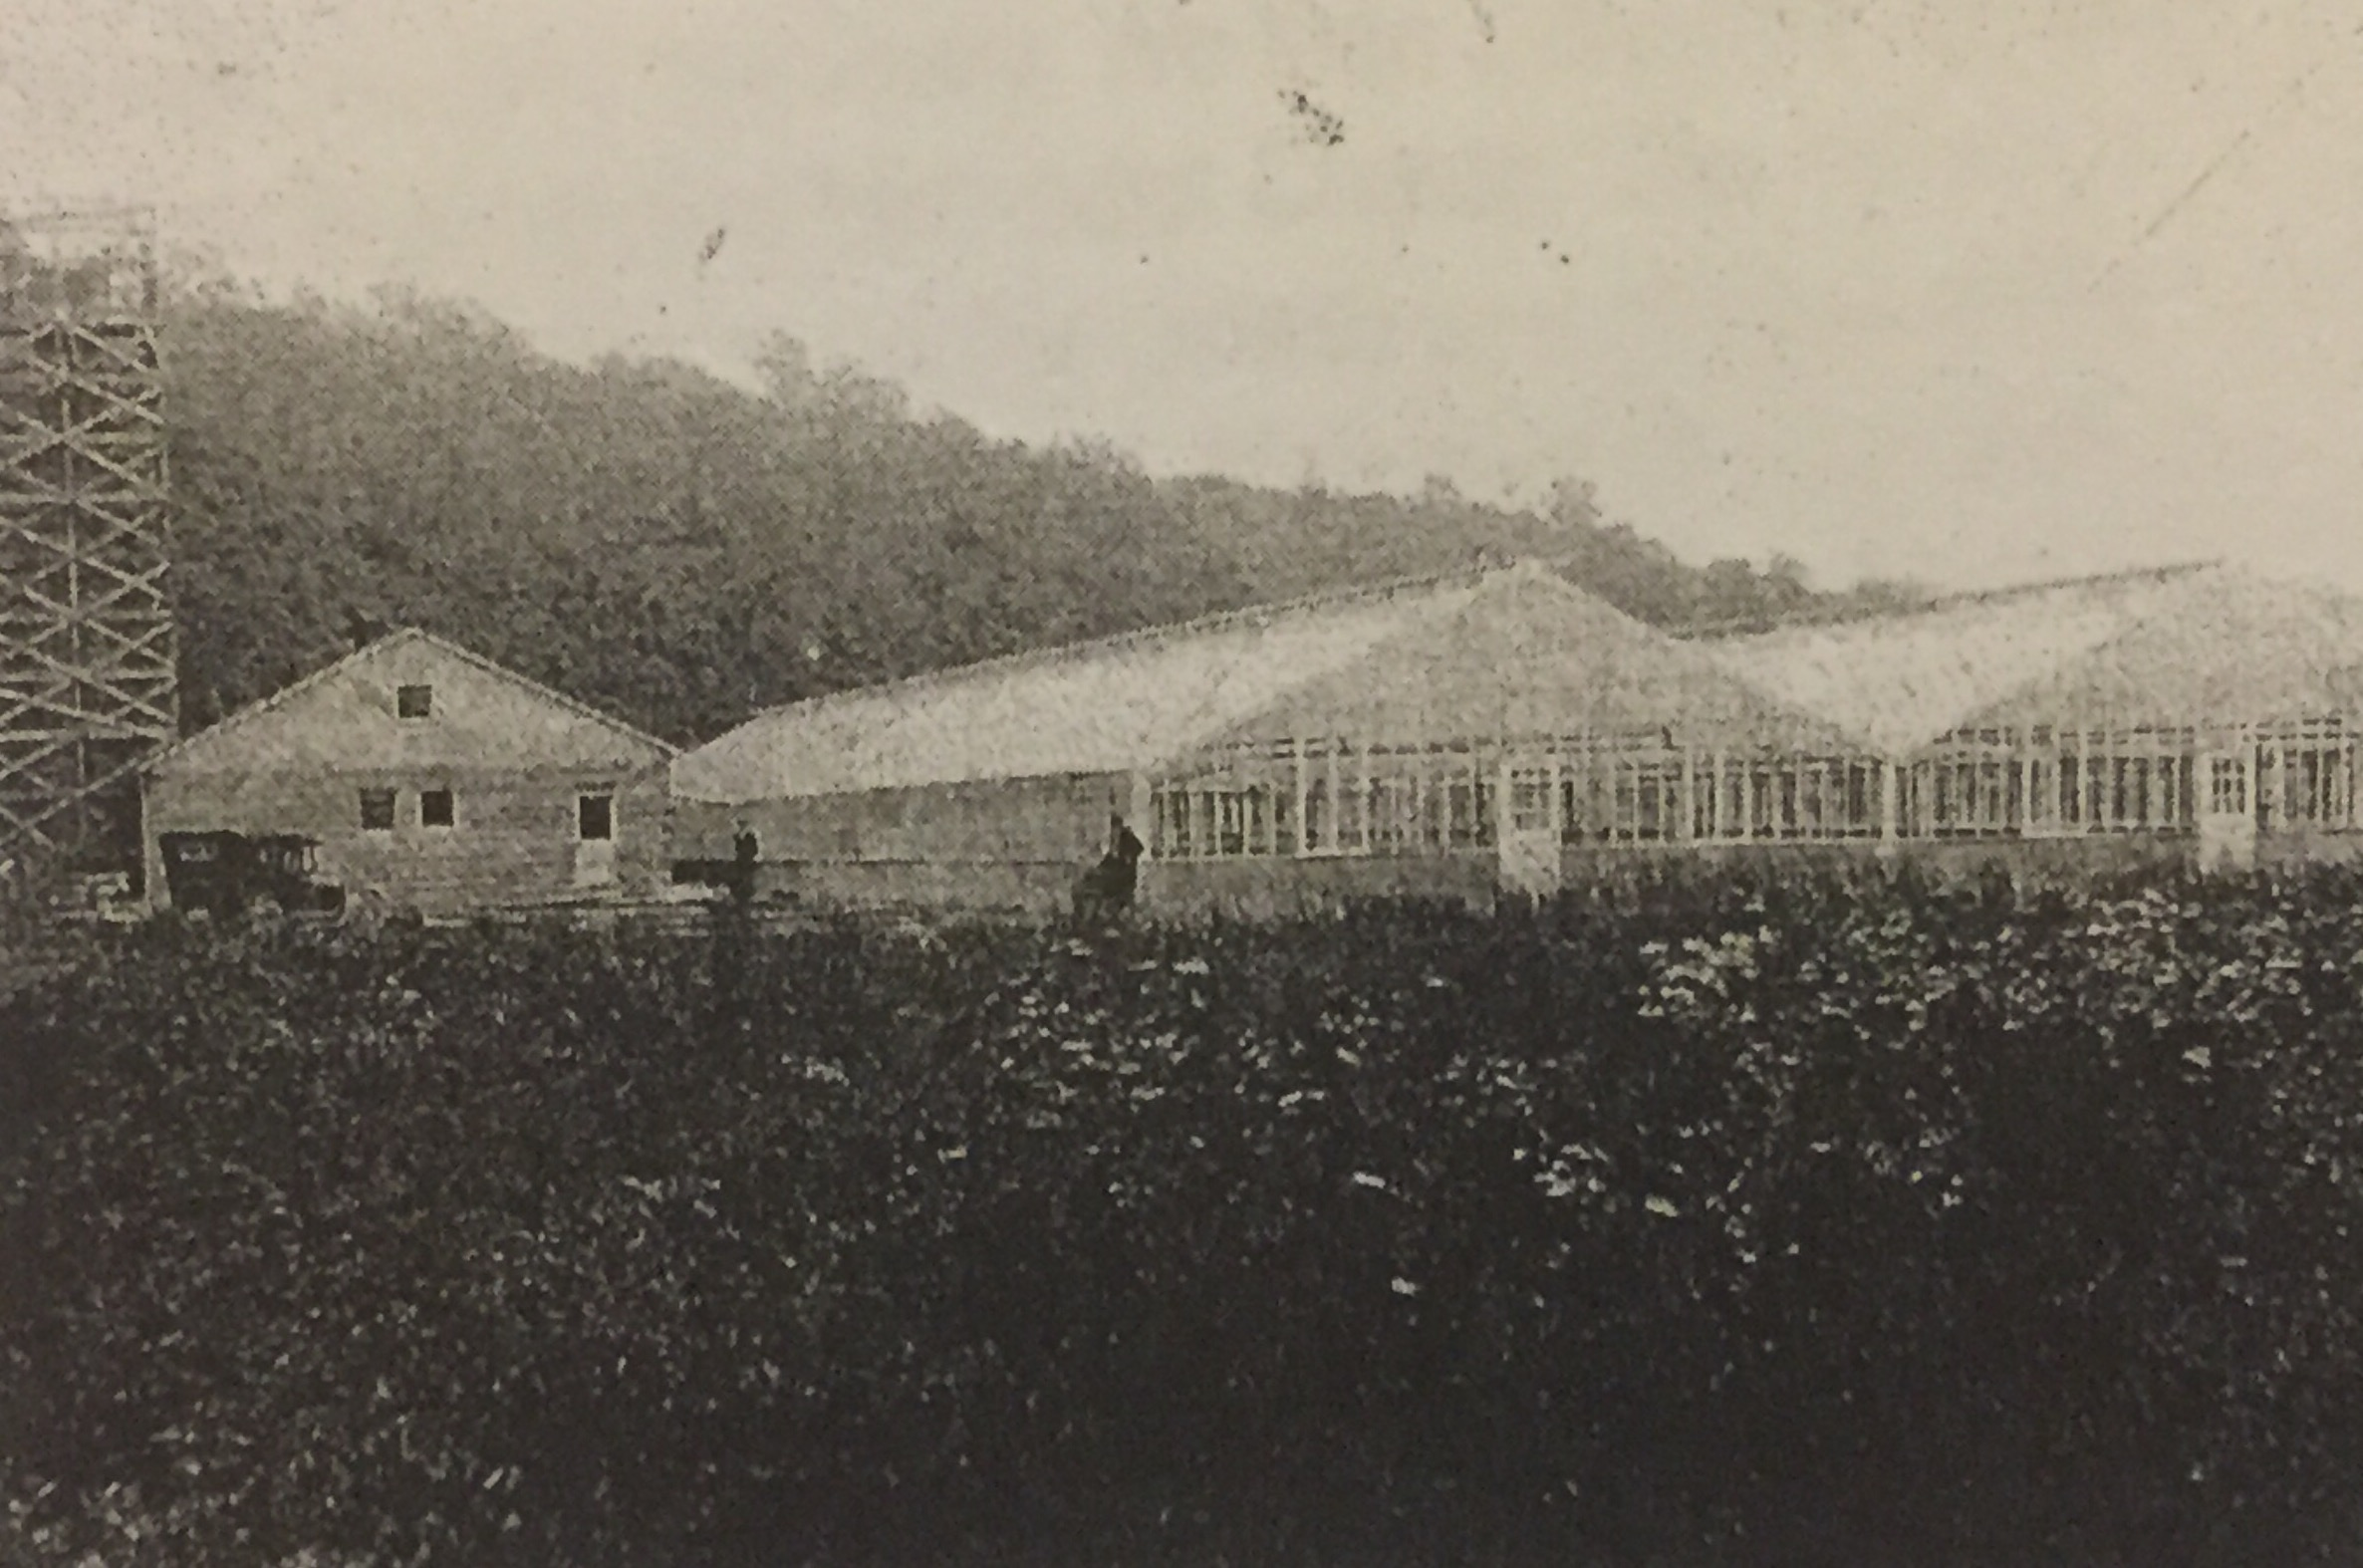 Greenhouse in South Point, Ohio